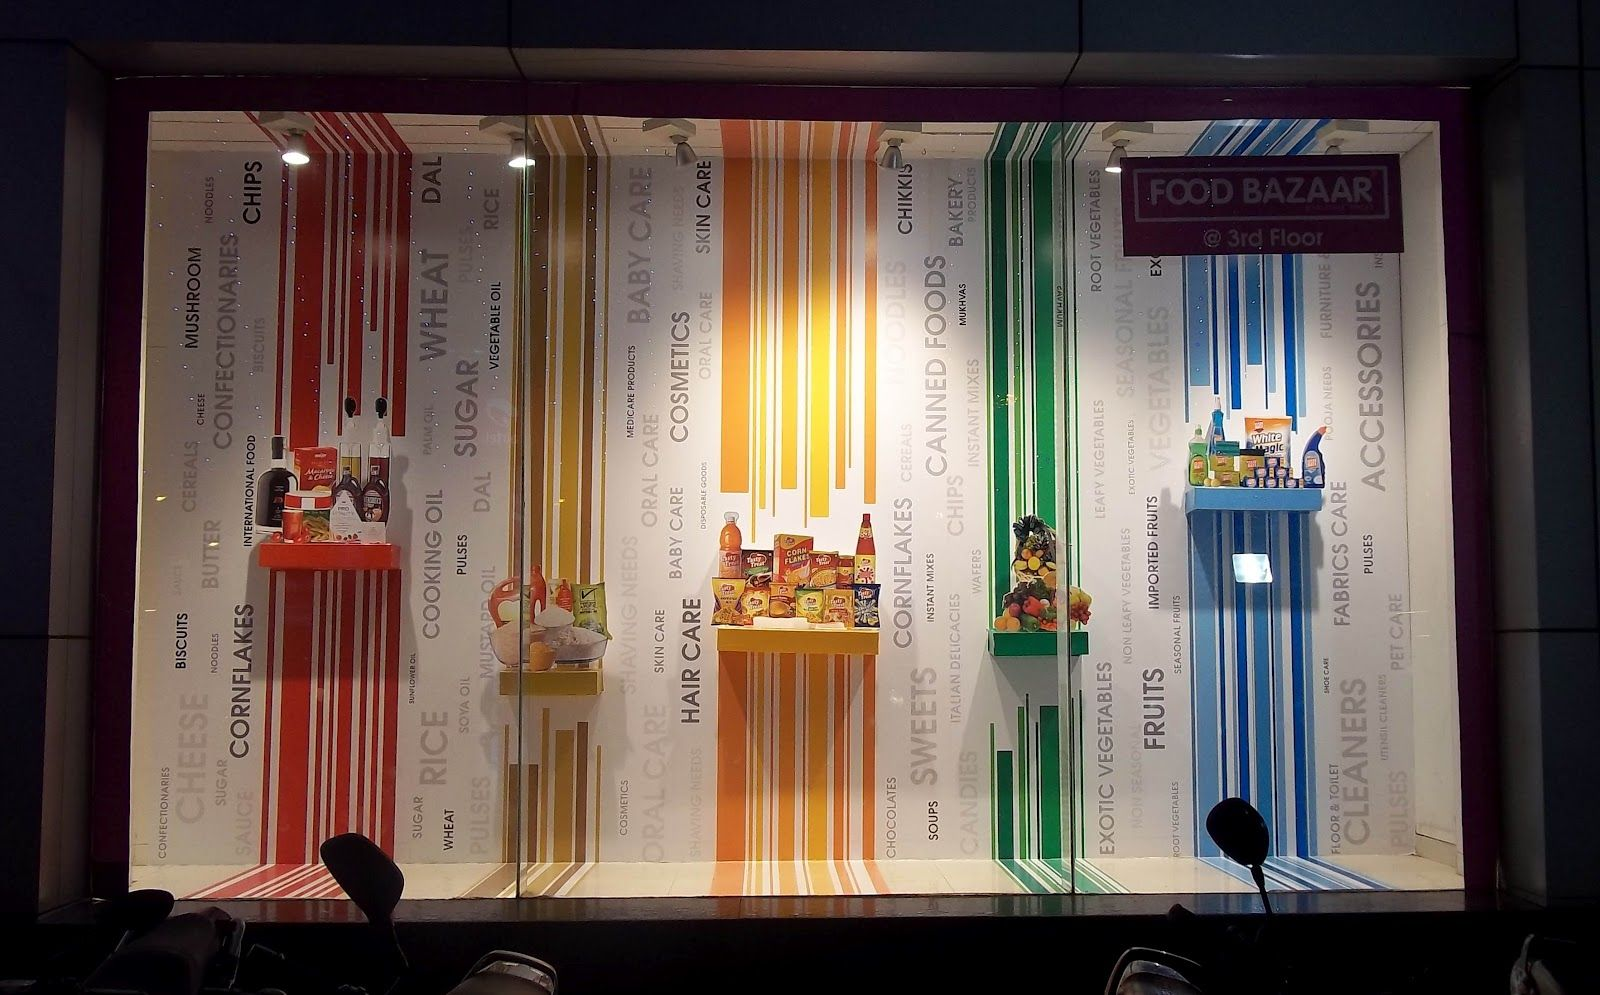 Pin on Retail |Curved Line Display Visual Merchandising